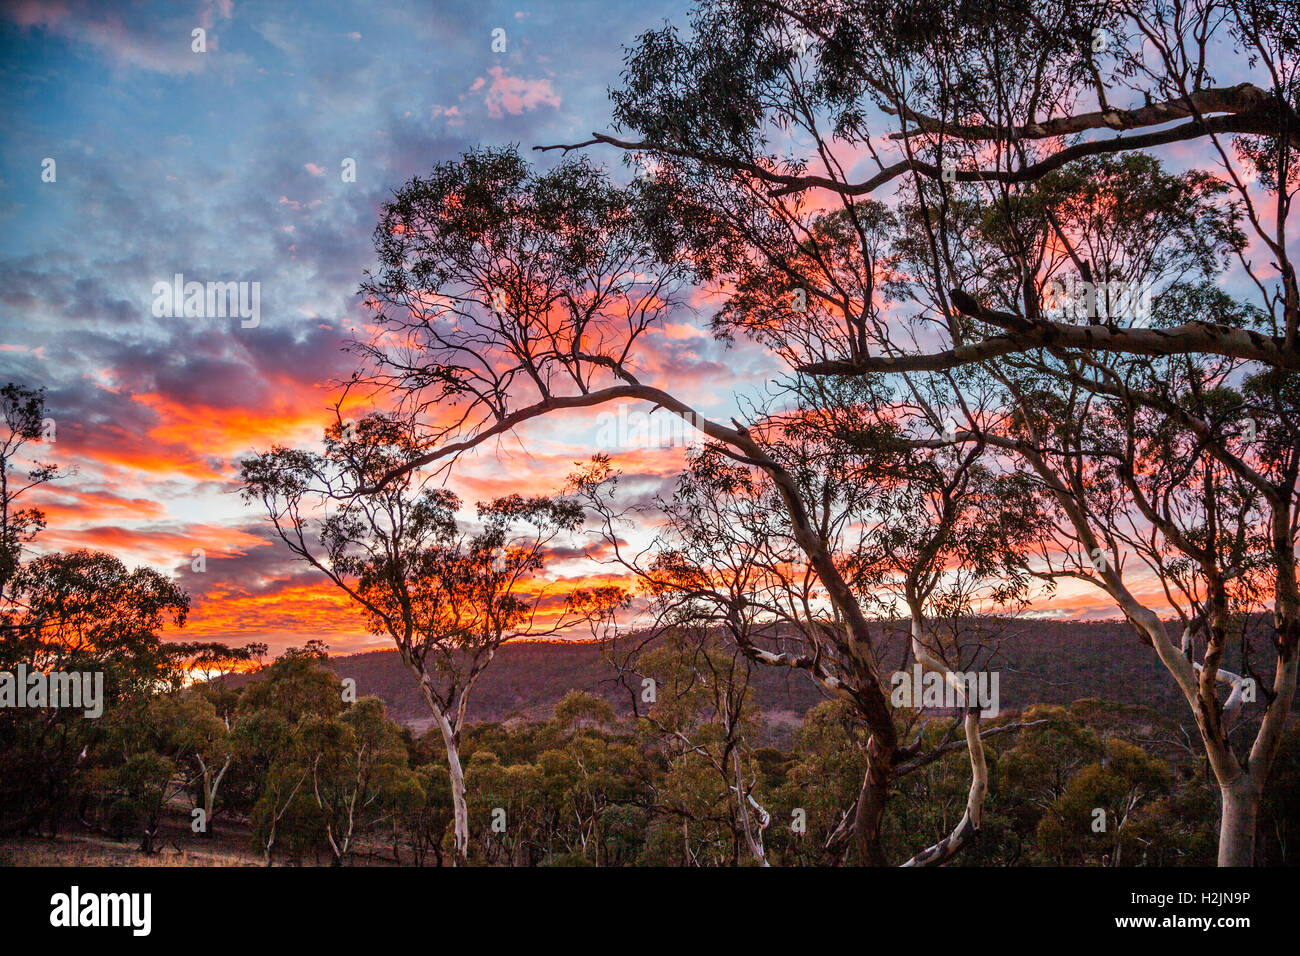 sunrise at Hancock's Lookout, Spencer Gulf, near Wilmington South Australia - Stock Image